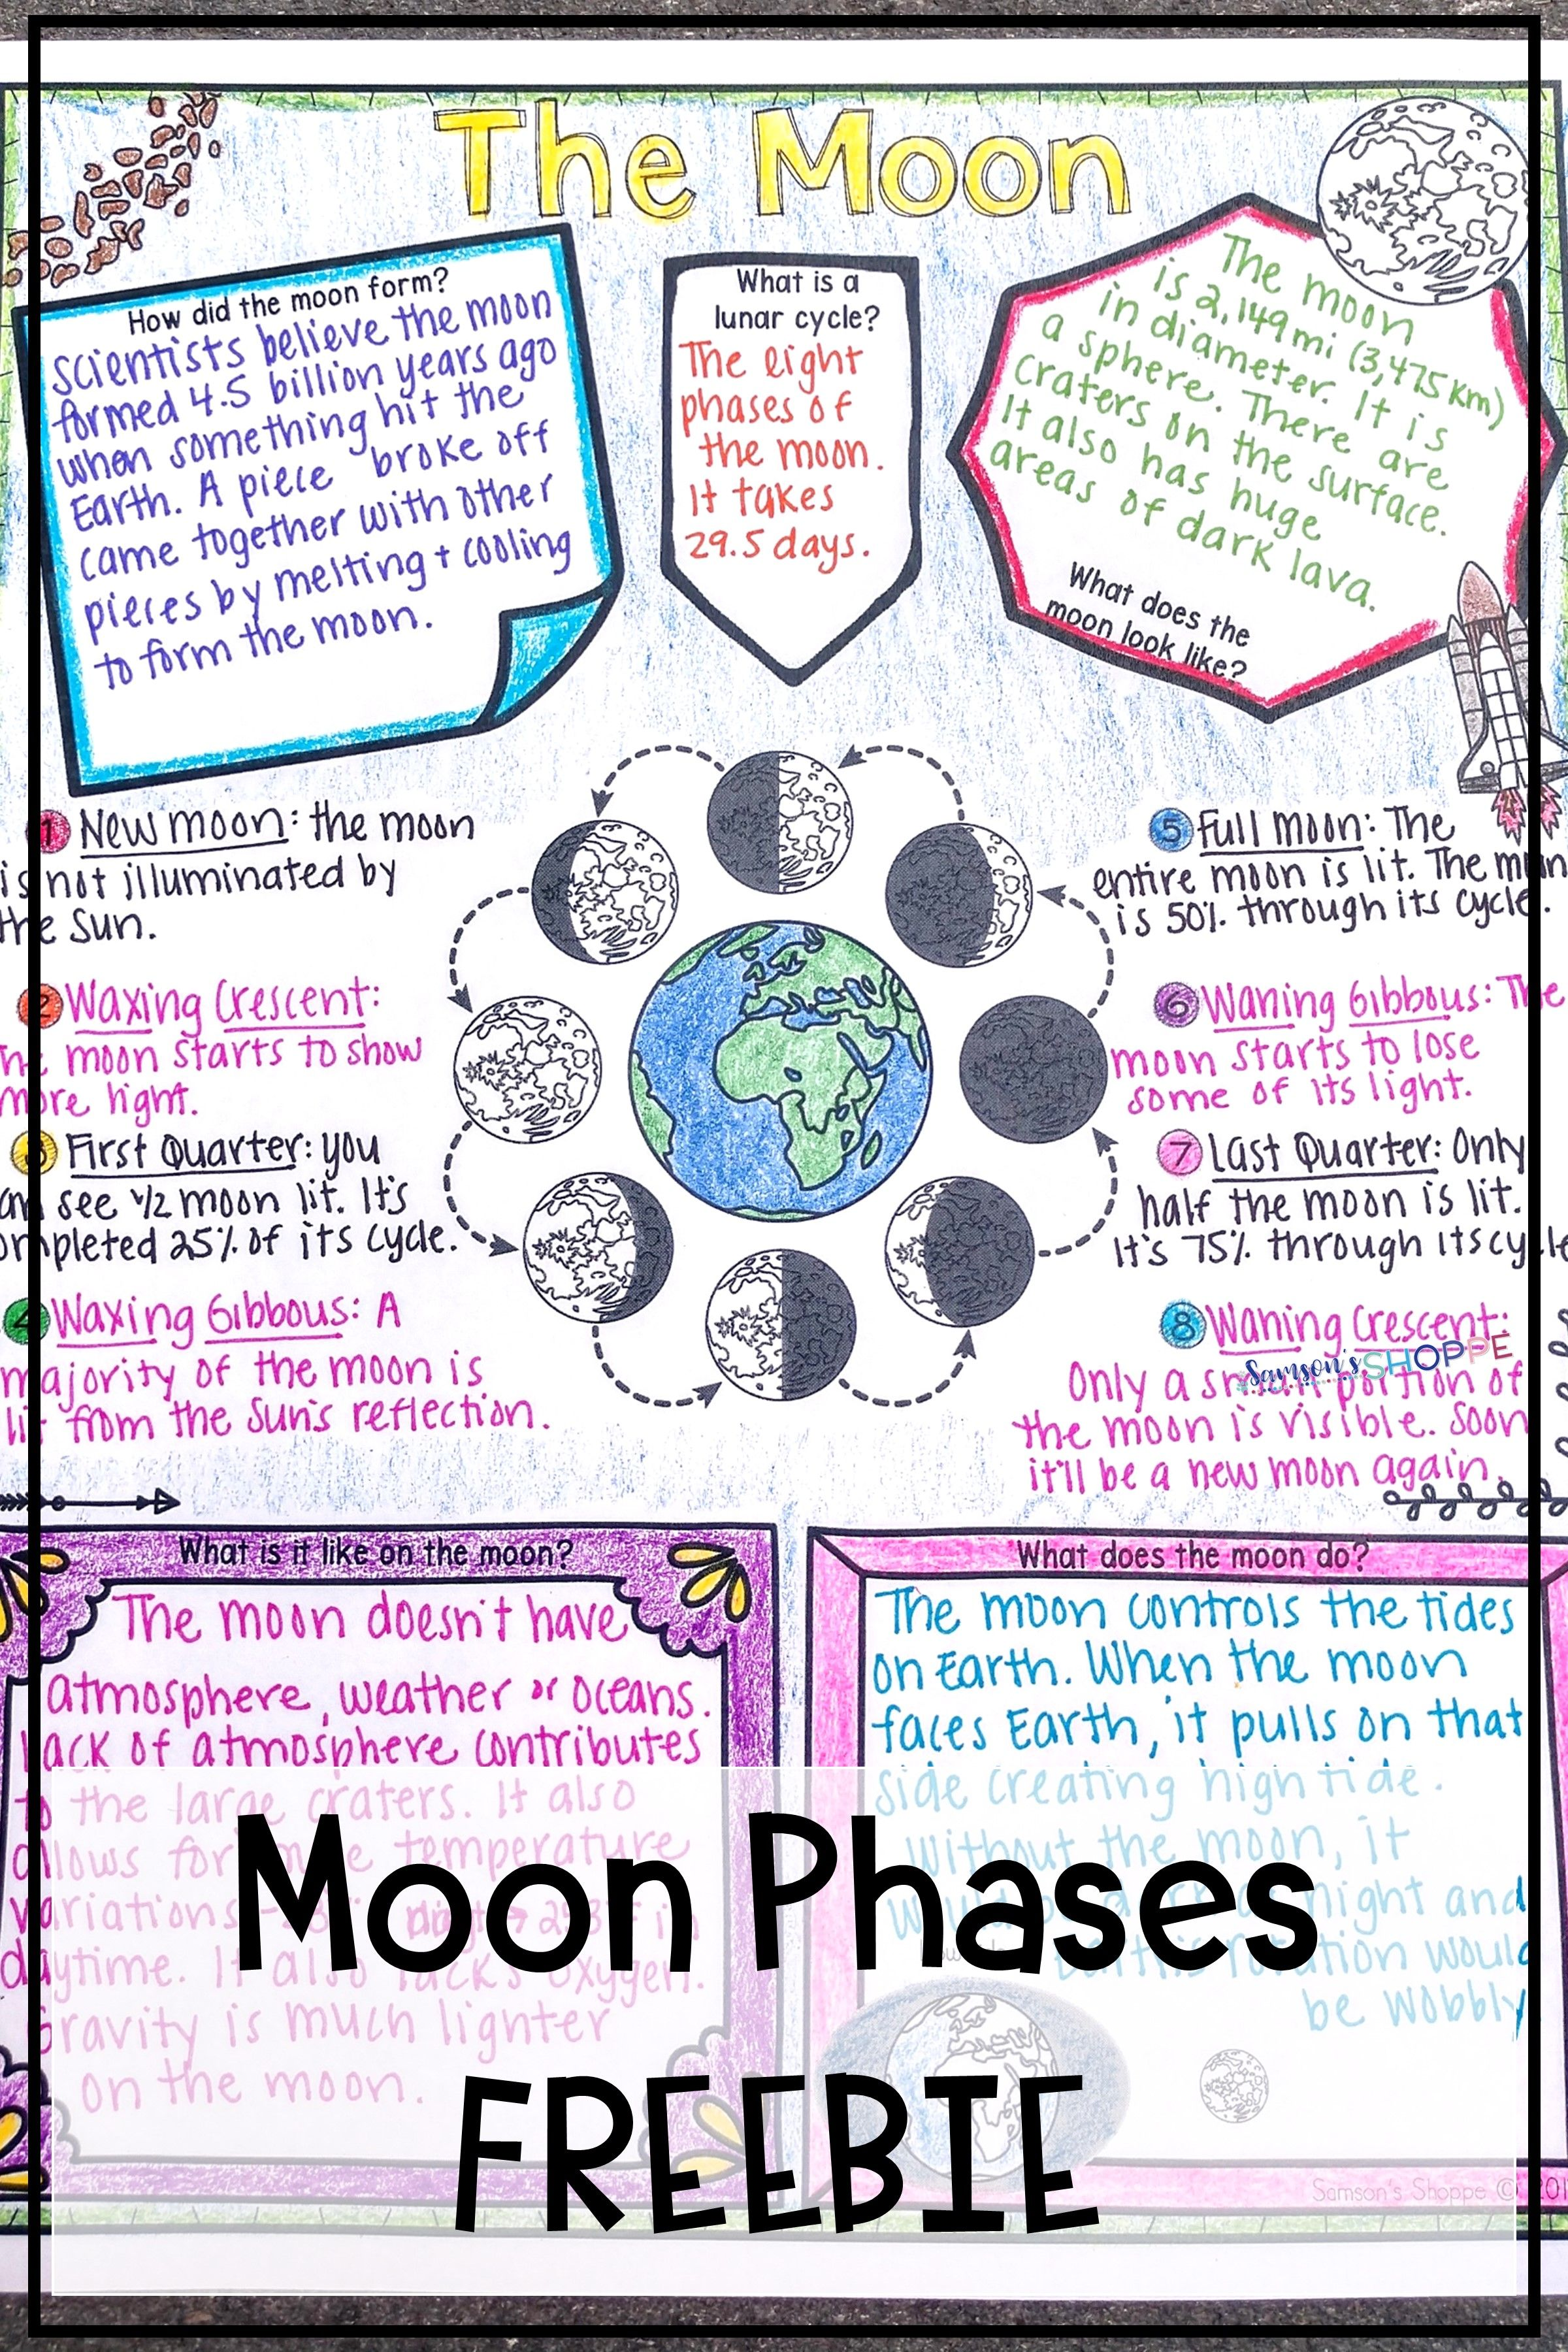 hight resolution of Free moon   Help students discover and learn about the moon and its phases  through the free reading of the…   Sketch notes